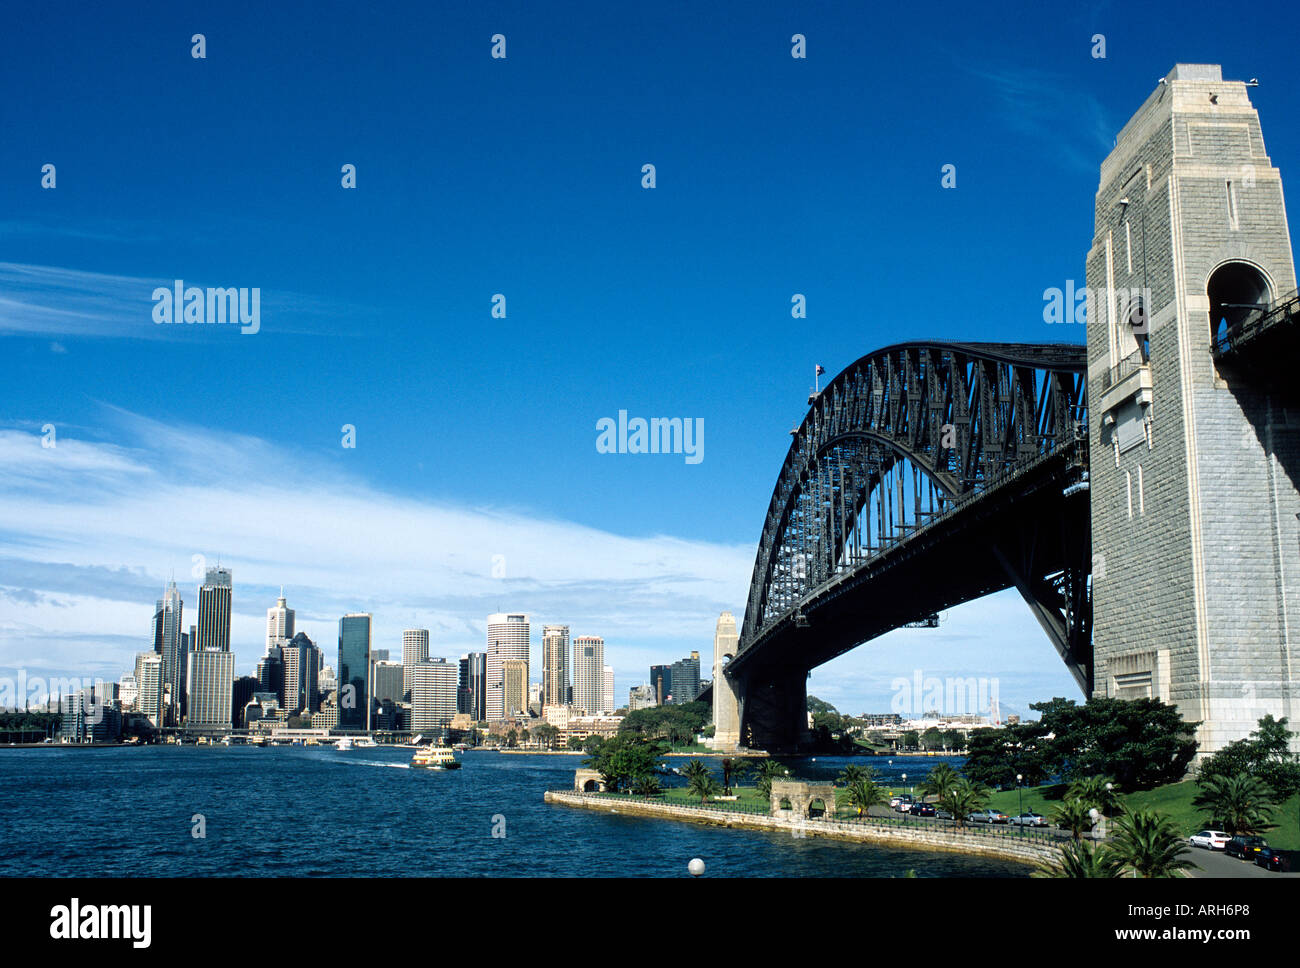 Sydney Harbour City and Bridge - Stock Image